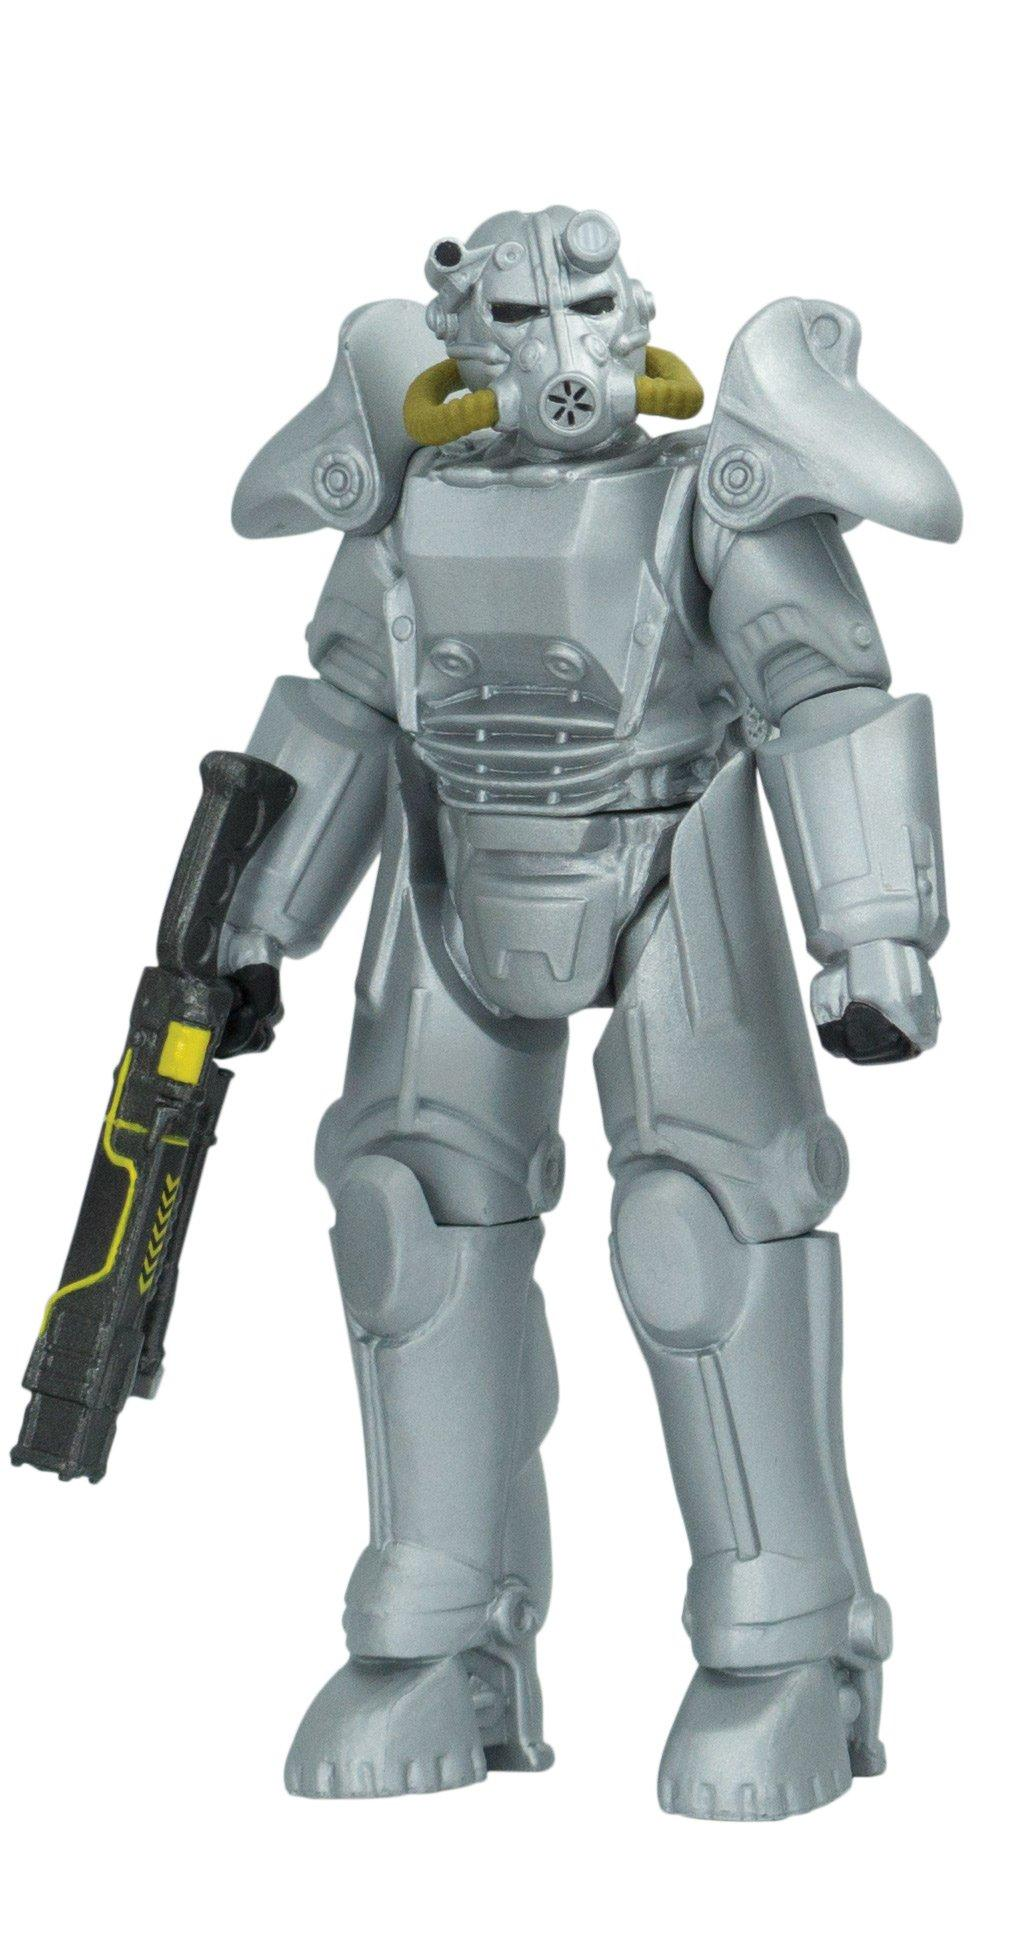 Fallout 4 Inch T 45 Armor Figure Only At Gamestop Gamestop